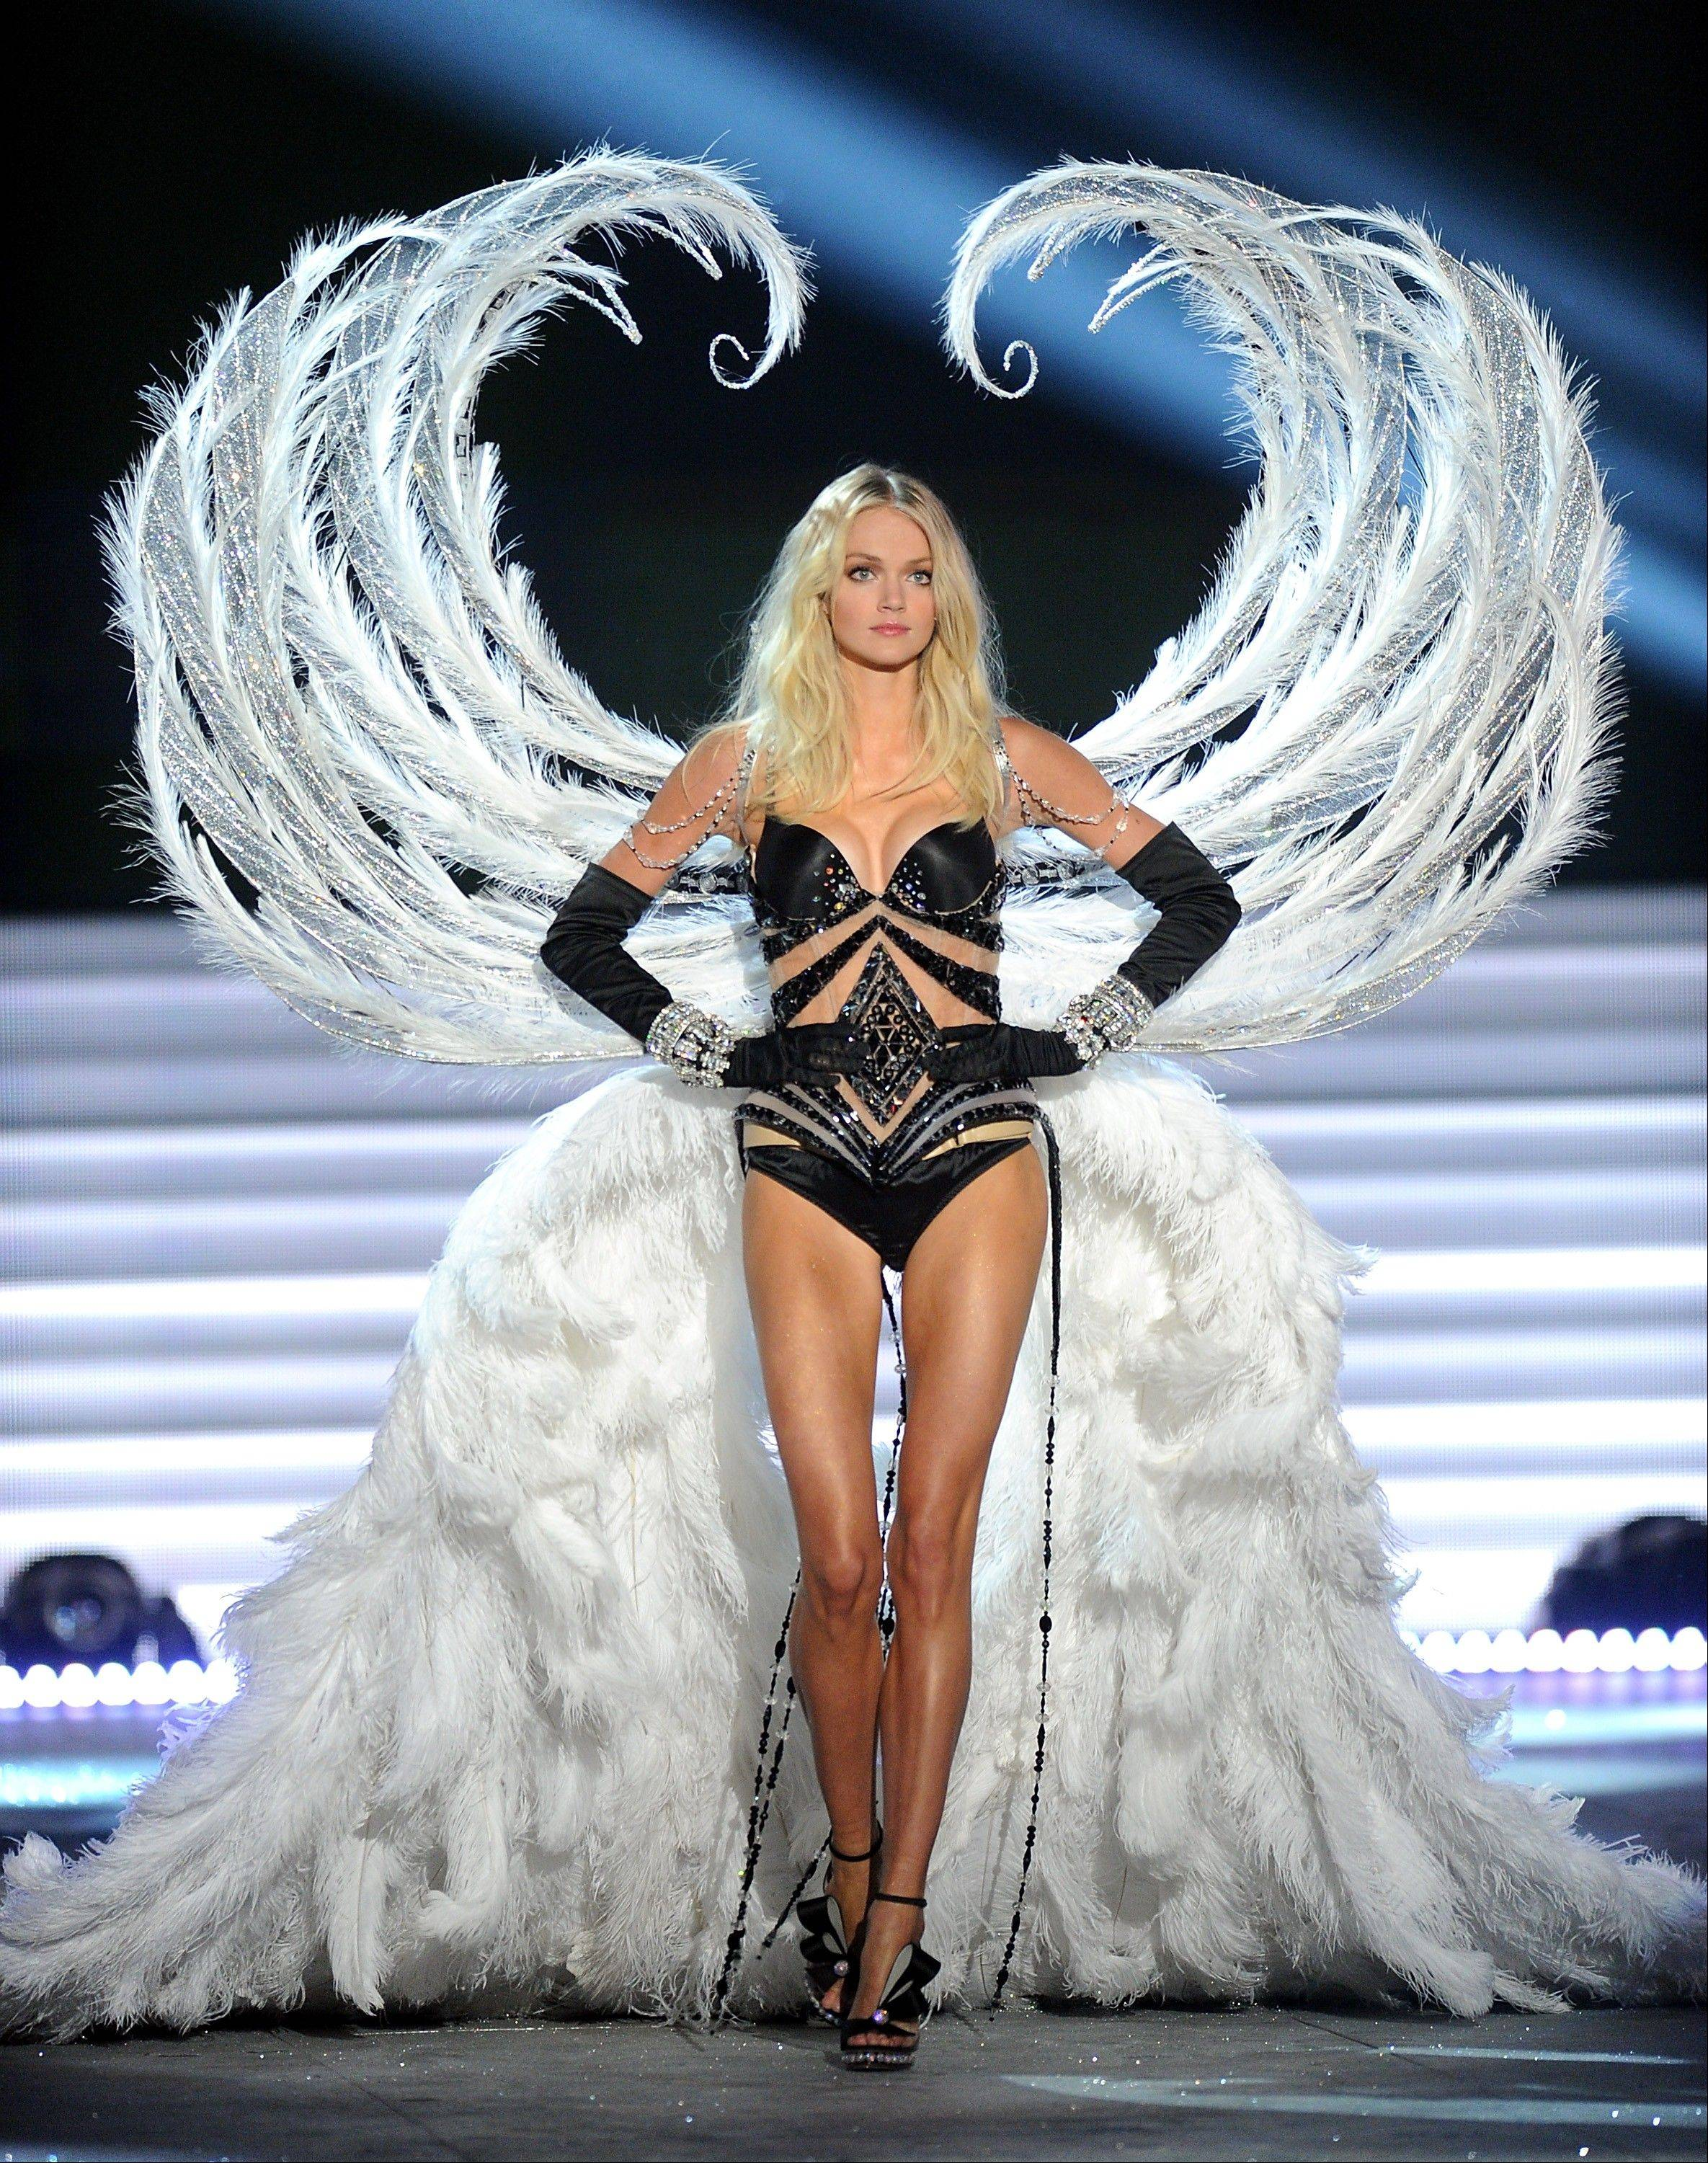 A model walks the runway during the 2012 Victoria's Secret Fashion Show.